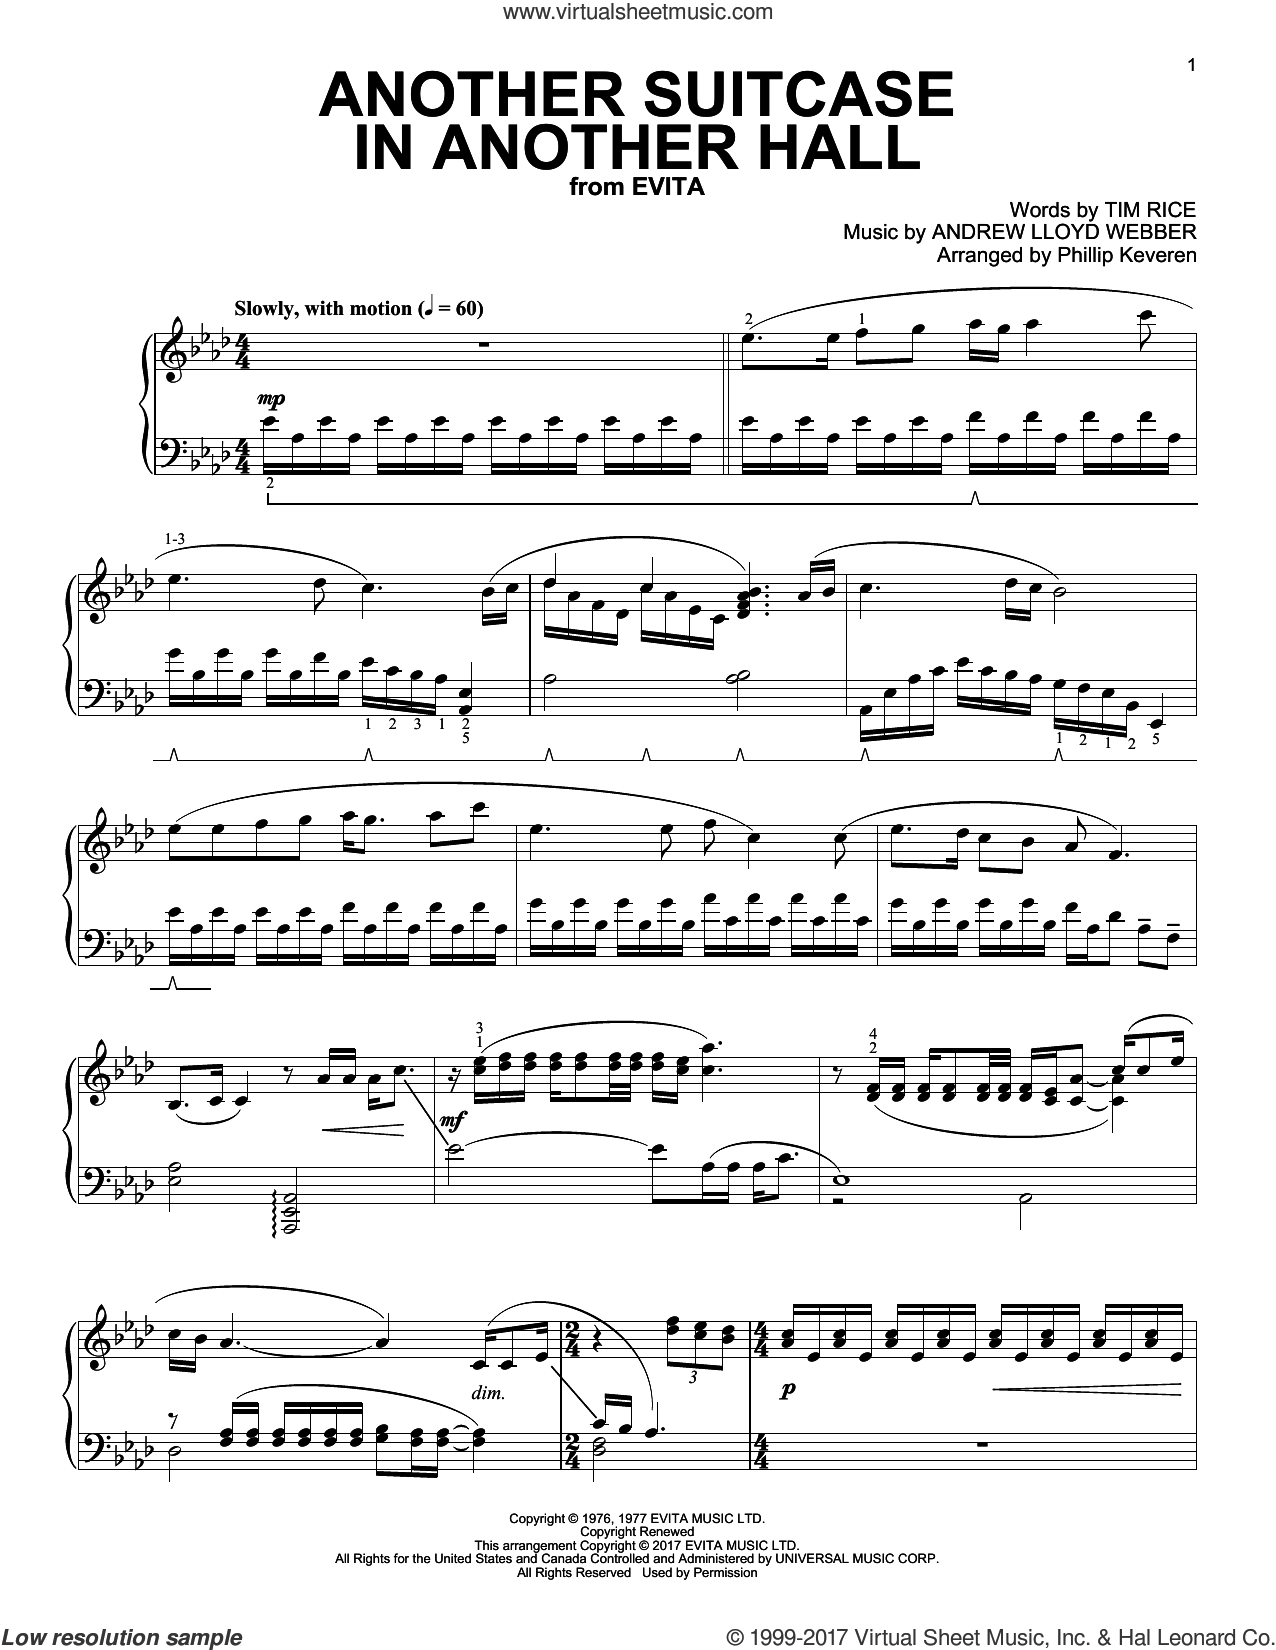 Another Suitcase In Another Hall sheet music for piano solo by Andrew Lloyd Webber, Phillip Keveren and Tim Rice. Score Image Preview.